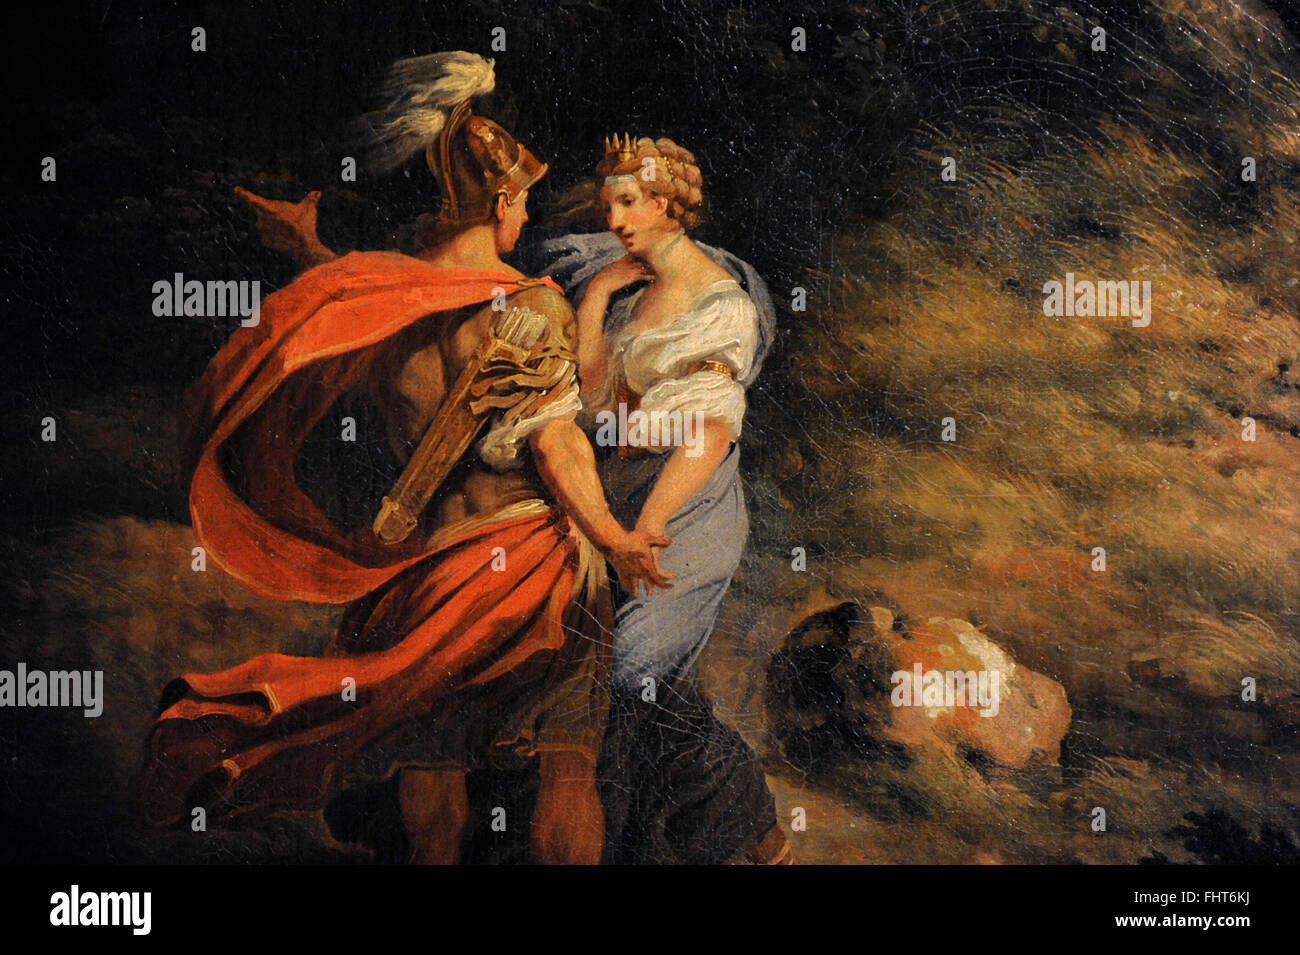 What is the relationship between Aeneas and Dido in the Aeneid?